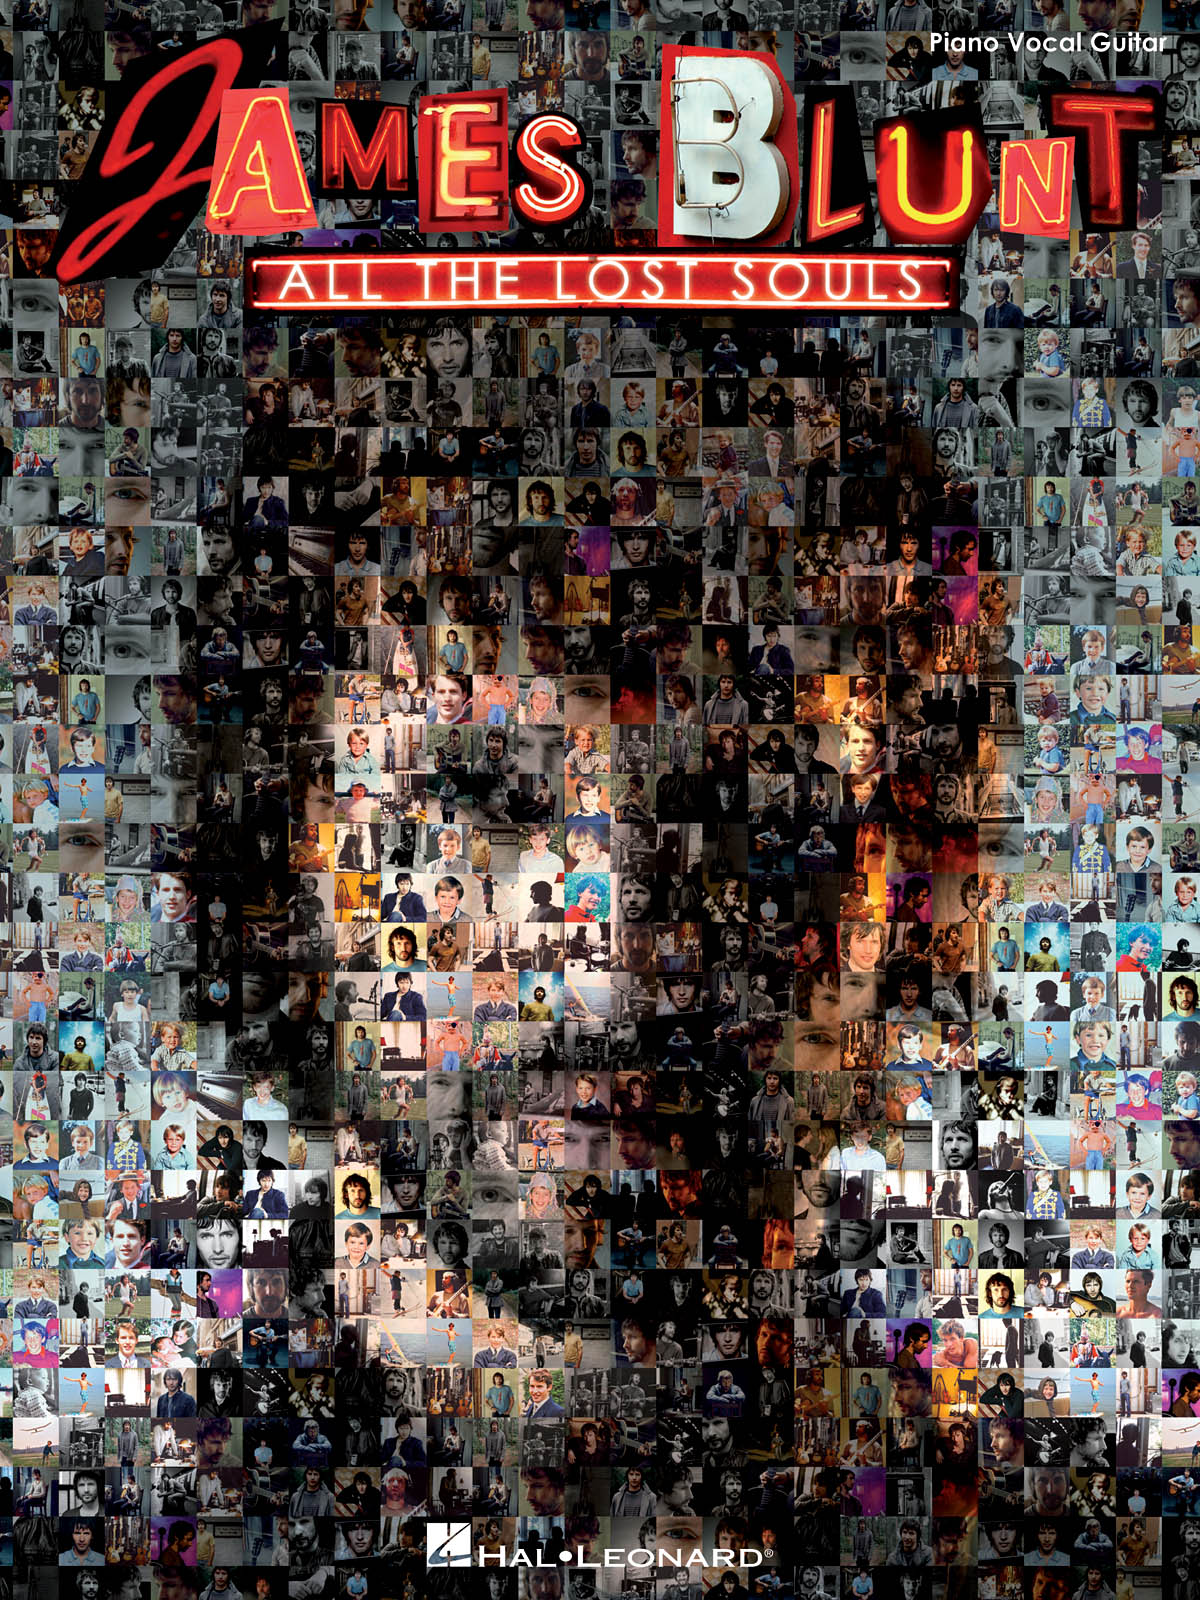 James Blunt: James Blunt - All The Lost Souls: Piano  Vocal and Guitar: Album